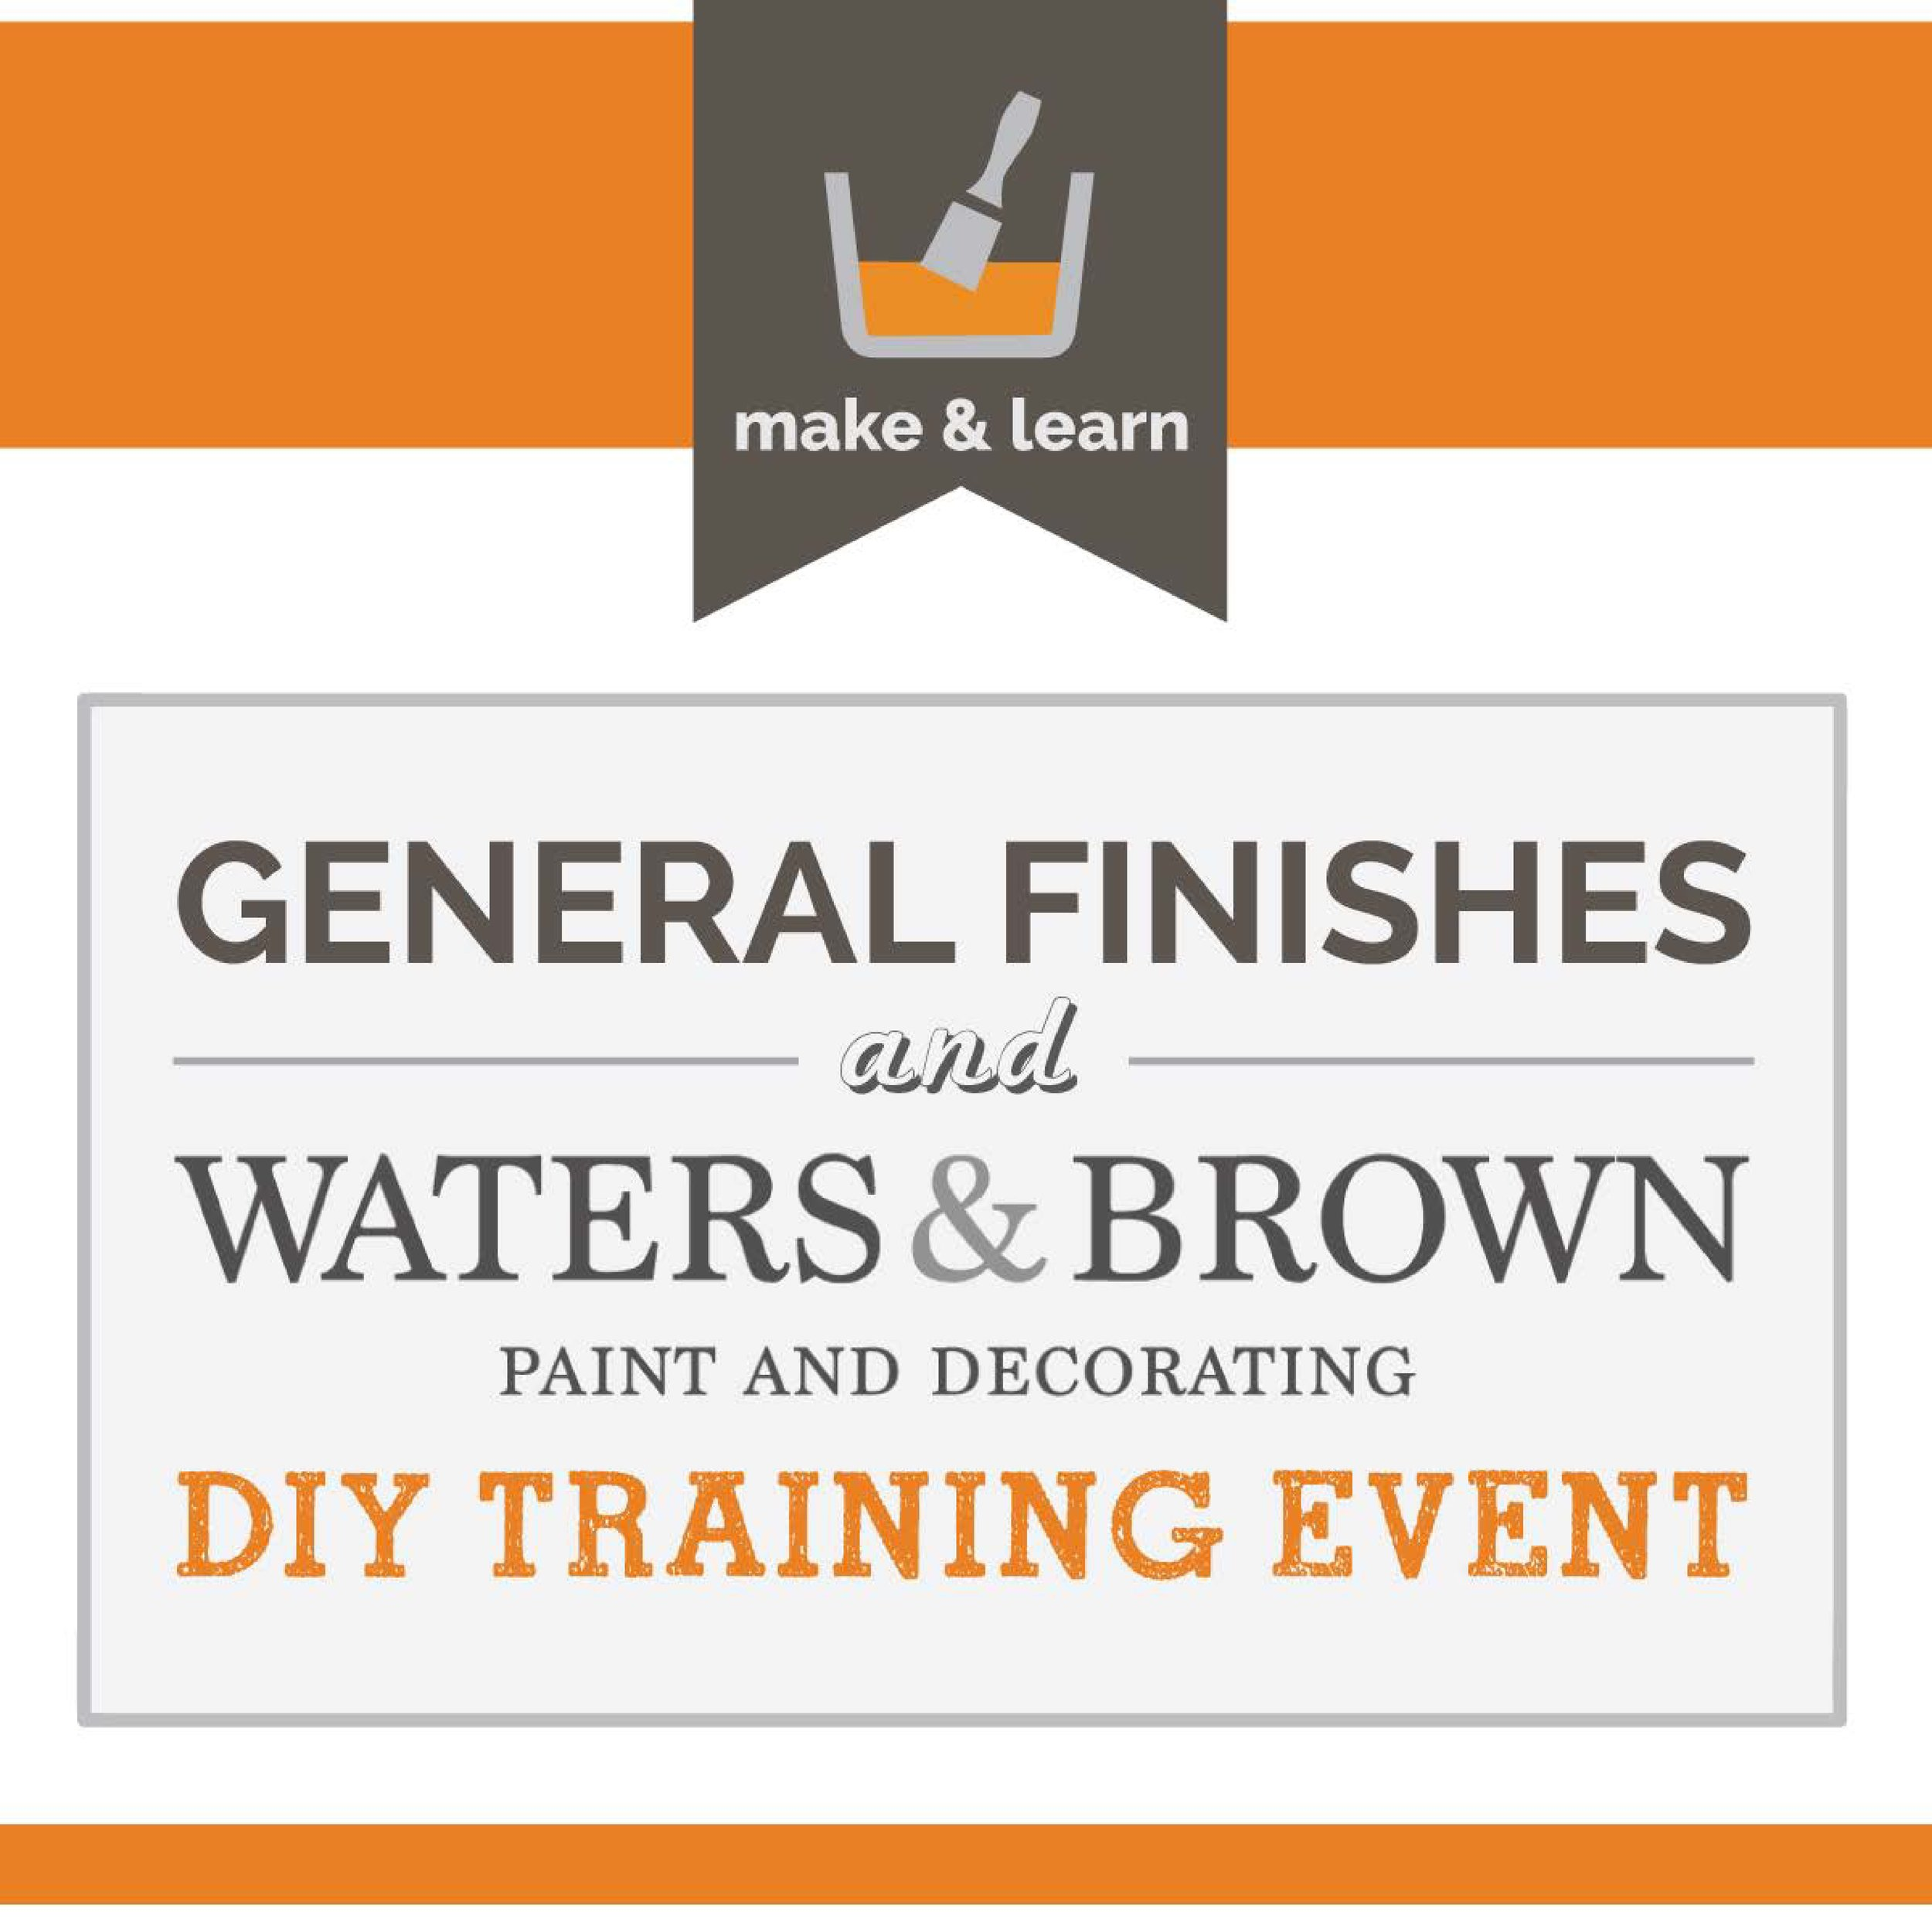 Wednesday, December 5, 2018  10:00 a.m. to 4:00 p.m.  Waters & Brown – Salem Store  281 Derby Street  Salem, MA 01970  This event is focused on training and educating all levels of hobbyist, DIY users, and professional decorative painters who would like an introduction to General Finishes Milk and Chalk Style Paint product lines. Training covers application and usage of GF's products, including glazes, top coats, and water-based stains. Finishes include a variety of faux and other professional types of applications.  Click  here  to register.